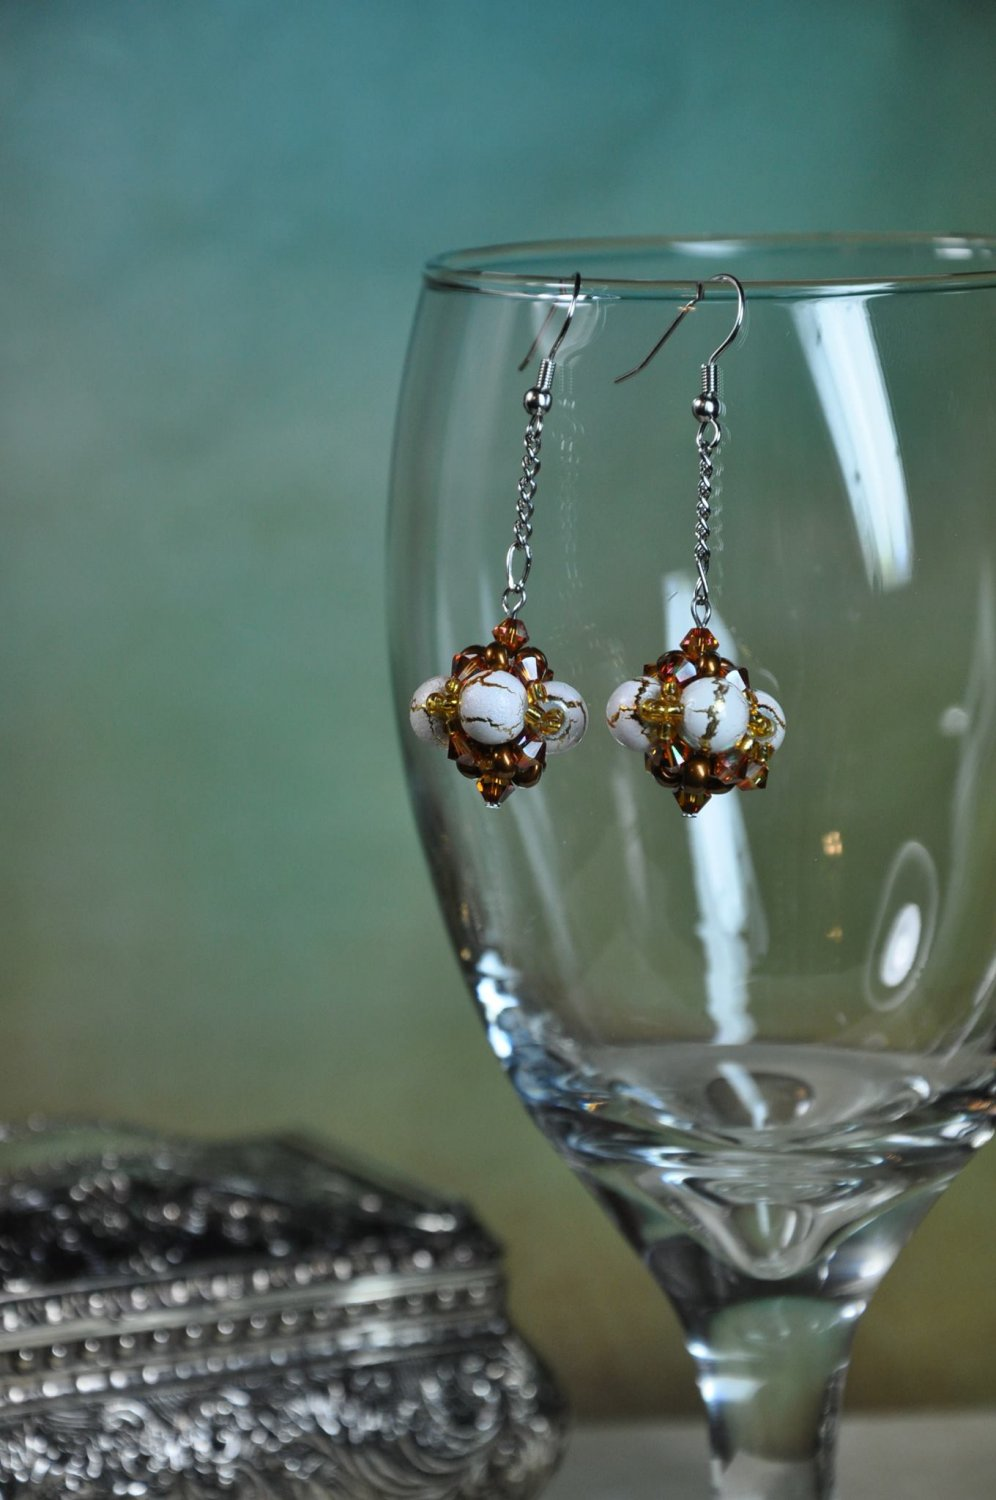 Hand Stitched Swarovski Earrings Golden Brown and Creme Bead Cluster Ball on Silver Chain